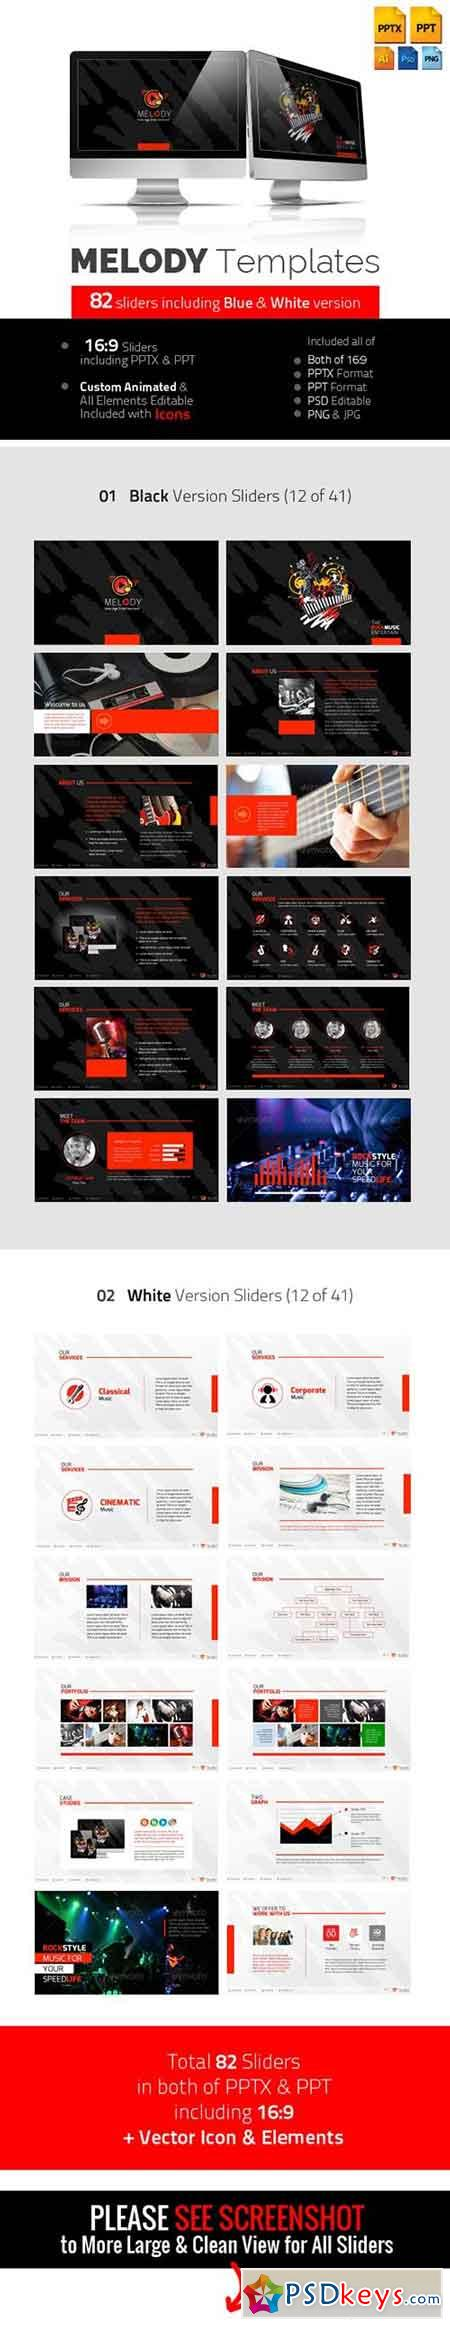 melody professional multimedia templates 5814136 free